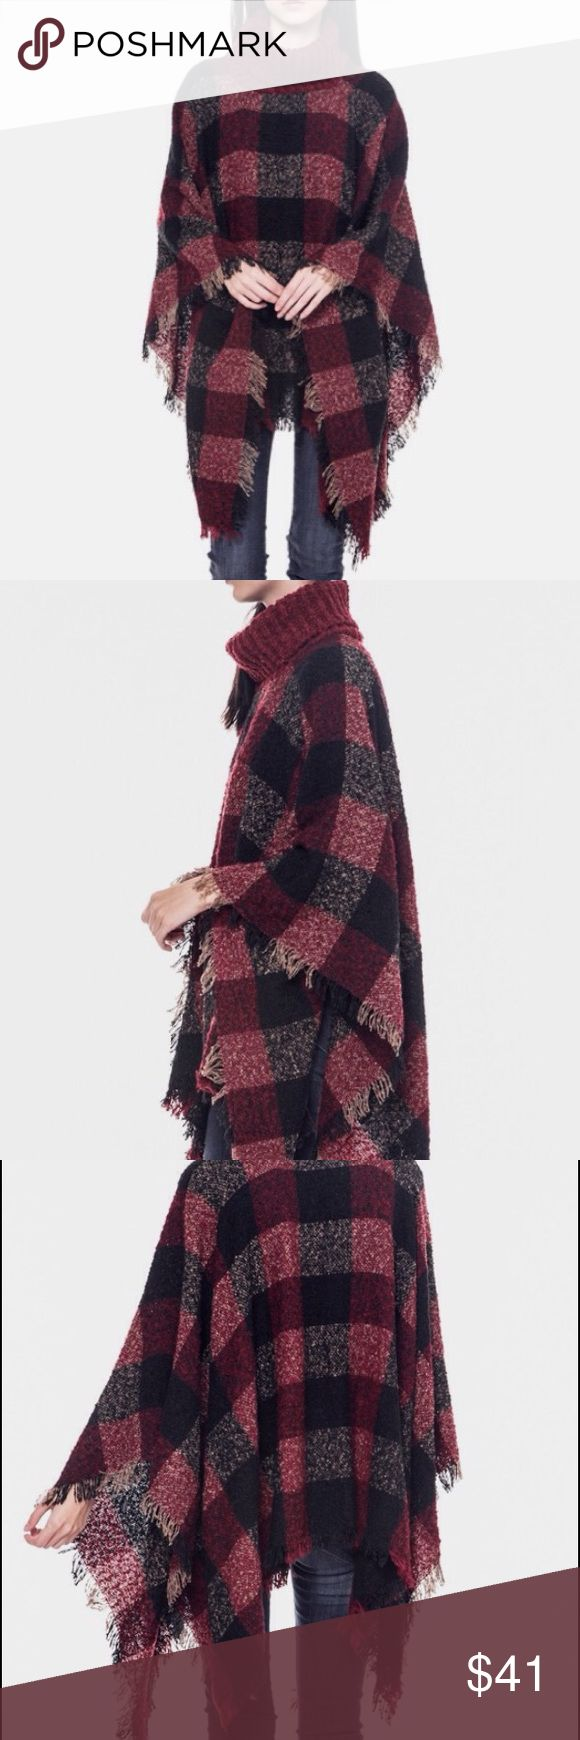 🆕 Rich Burgundy Plaid Poncho Perfect add to the Fall/Winter wardrobe. Rich colors with a deep rust-like burgundy dominating.  One size fits a range of sizes 2-10.  Material:  100% acrylic.  Price for a single purchase is firm.  Discount available for bundled purchases.  😊 Sweaters